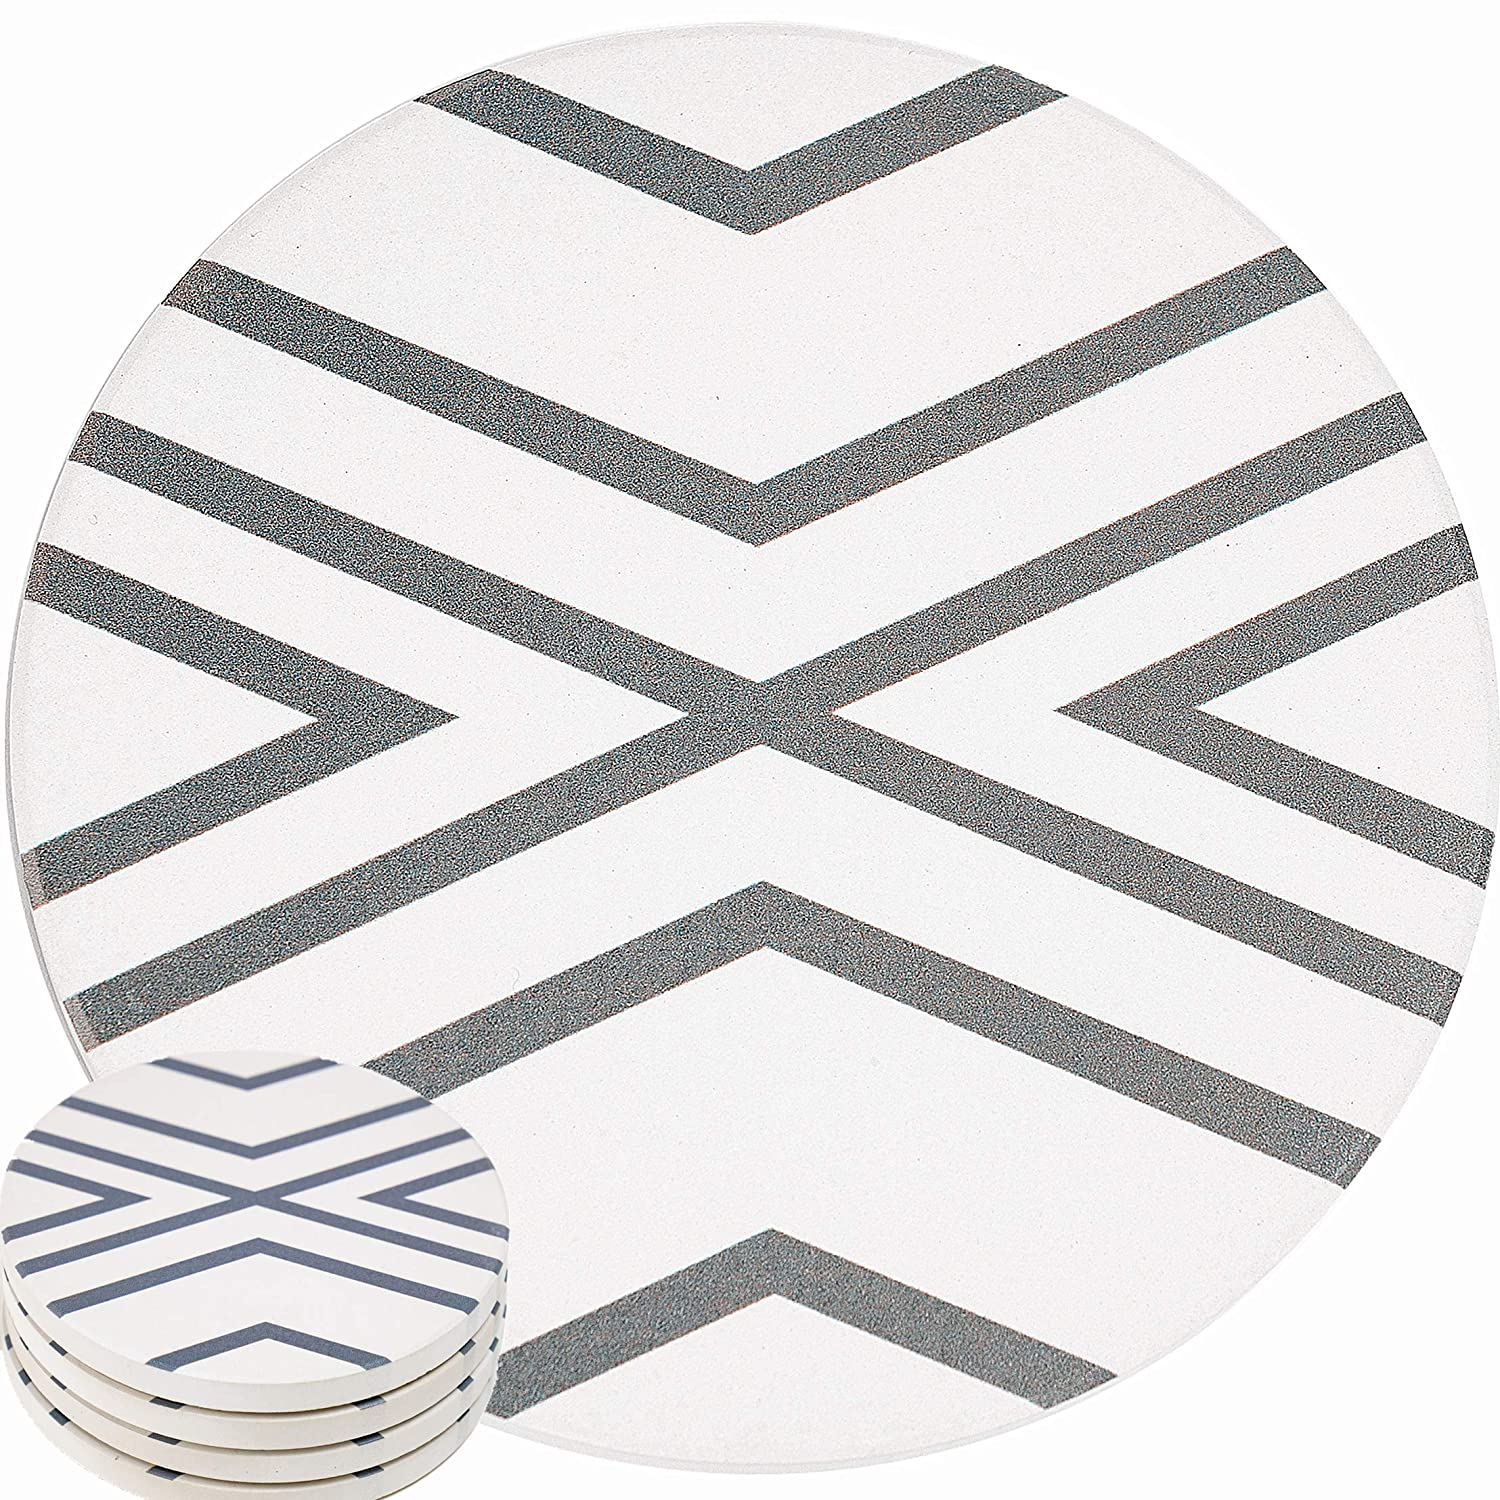 ENKORE Absorbent Coasters For Drinks - LARGE Ceramic Stone With Cork Base, Drink Spills Thirsty Cup Coaster Set of 5 Pack No Holder, OVERSIZE BETTER Protects Furniture - Grey Lines Design